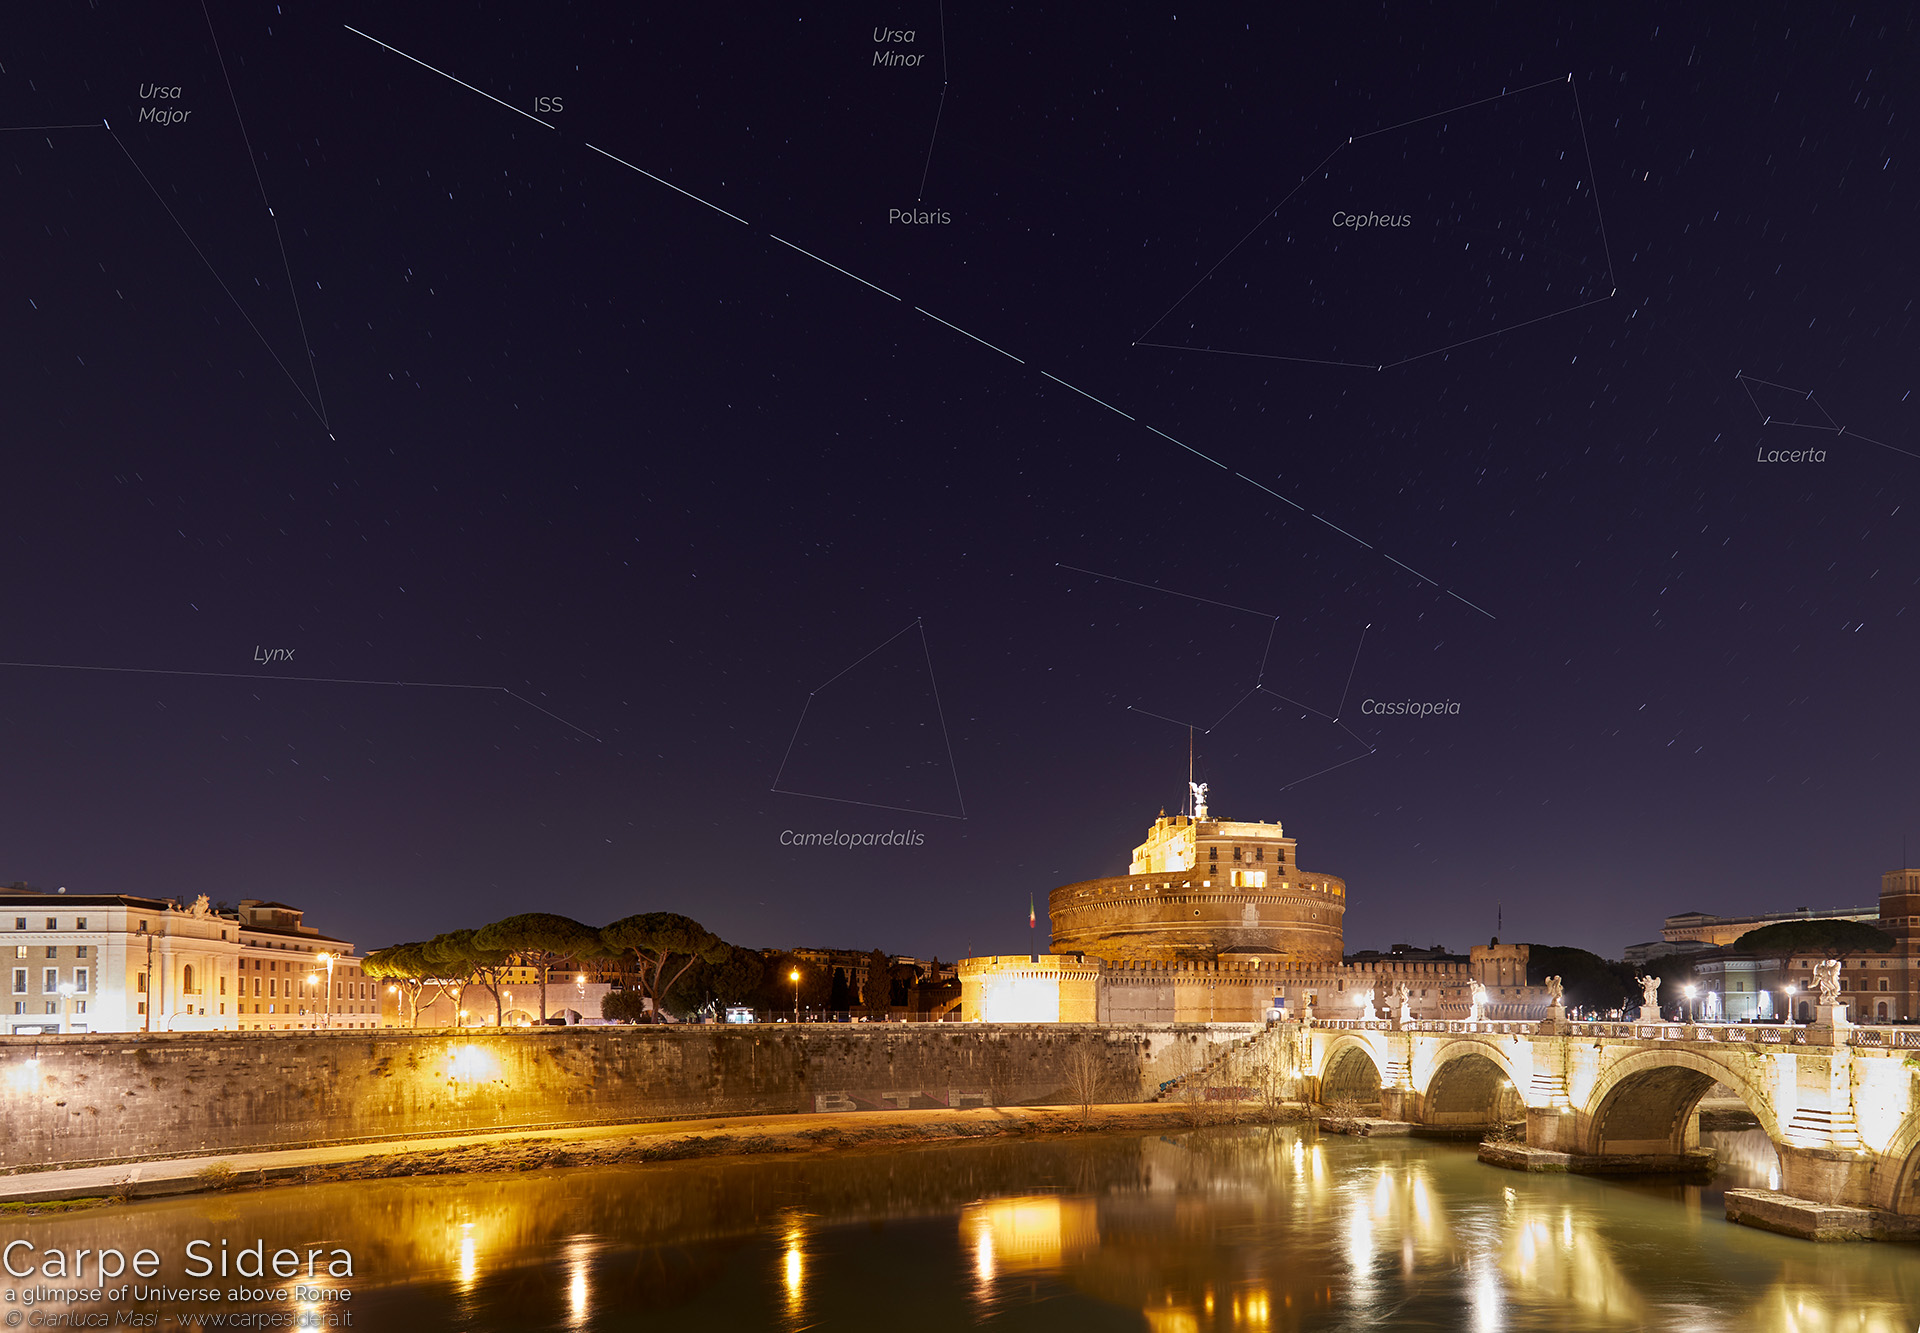 23. Castle of the Holy Angel, the Tiber and the International Space Station (ISS).